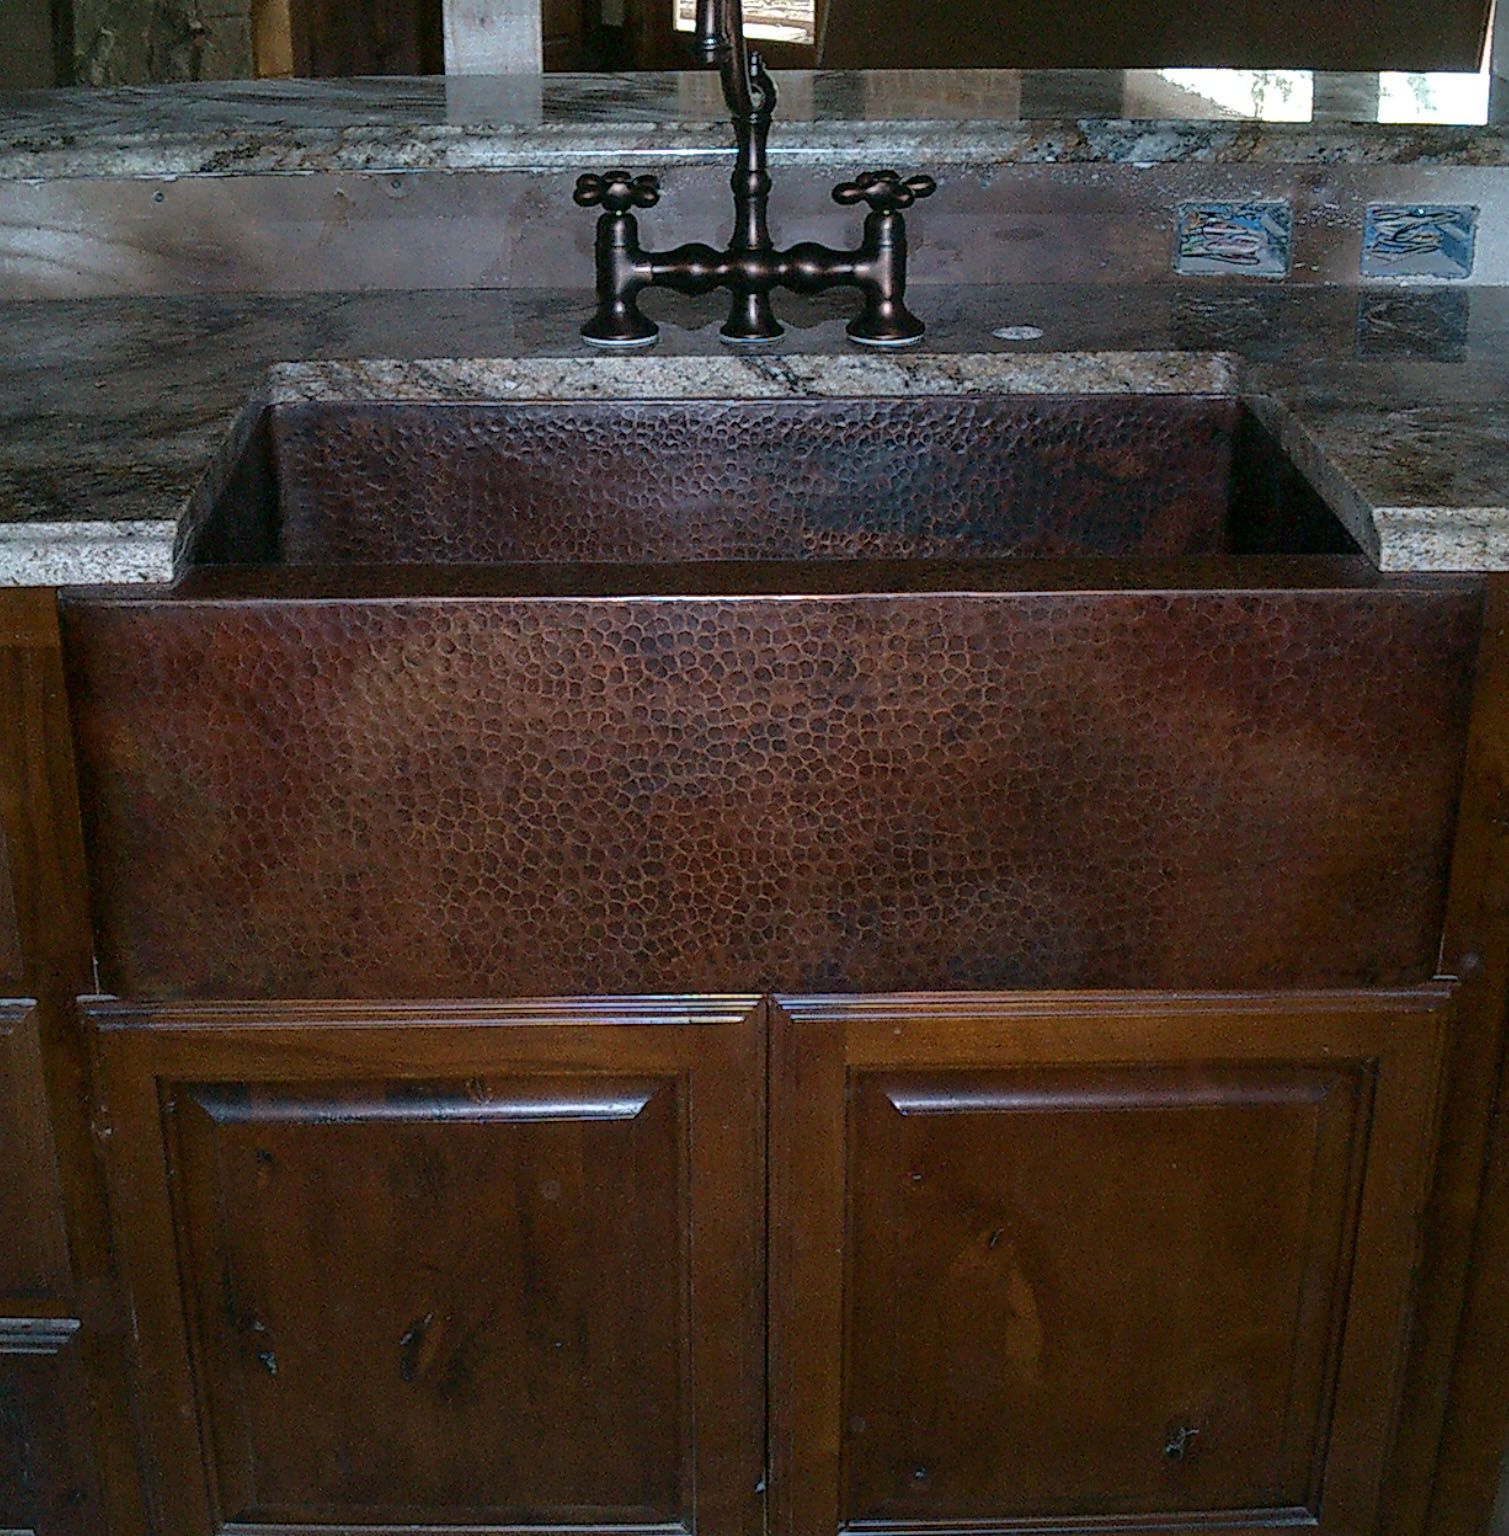 Oil Rubbed Bronze Farmhouse Sink.Jim G S Hammered Copper Farmhouse Sink With Wood Cabinets